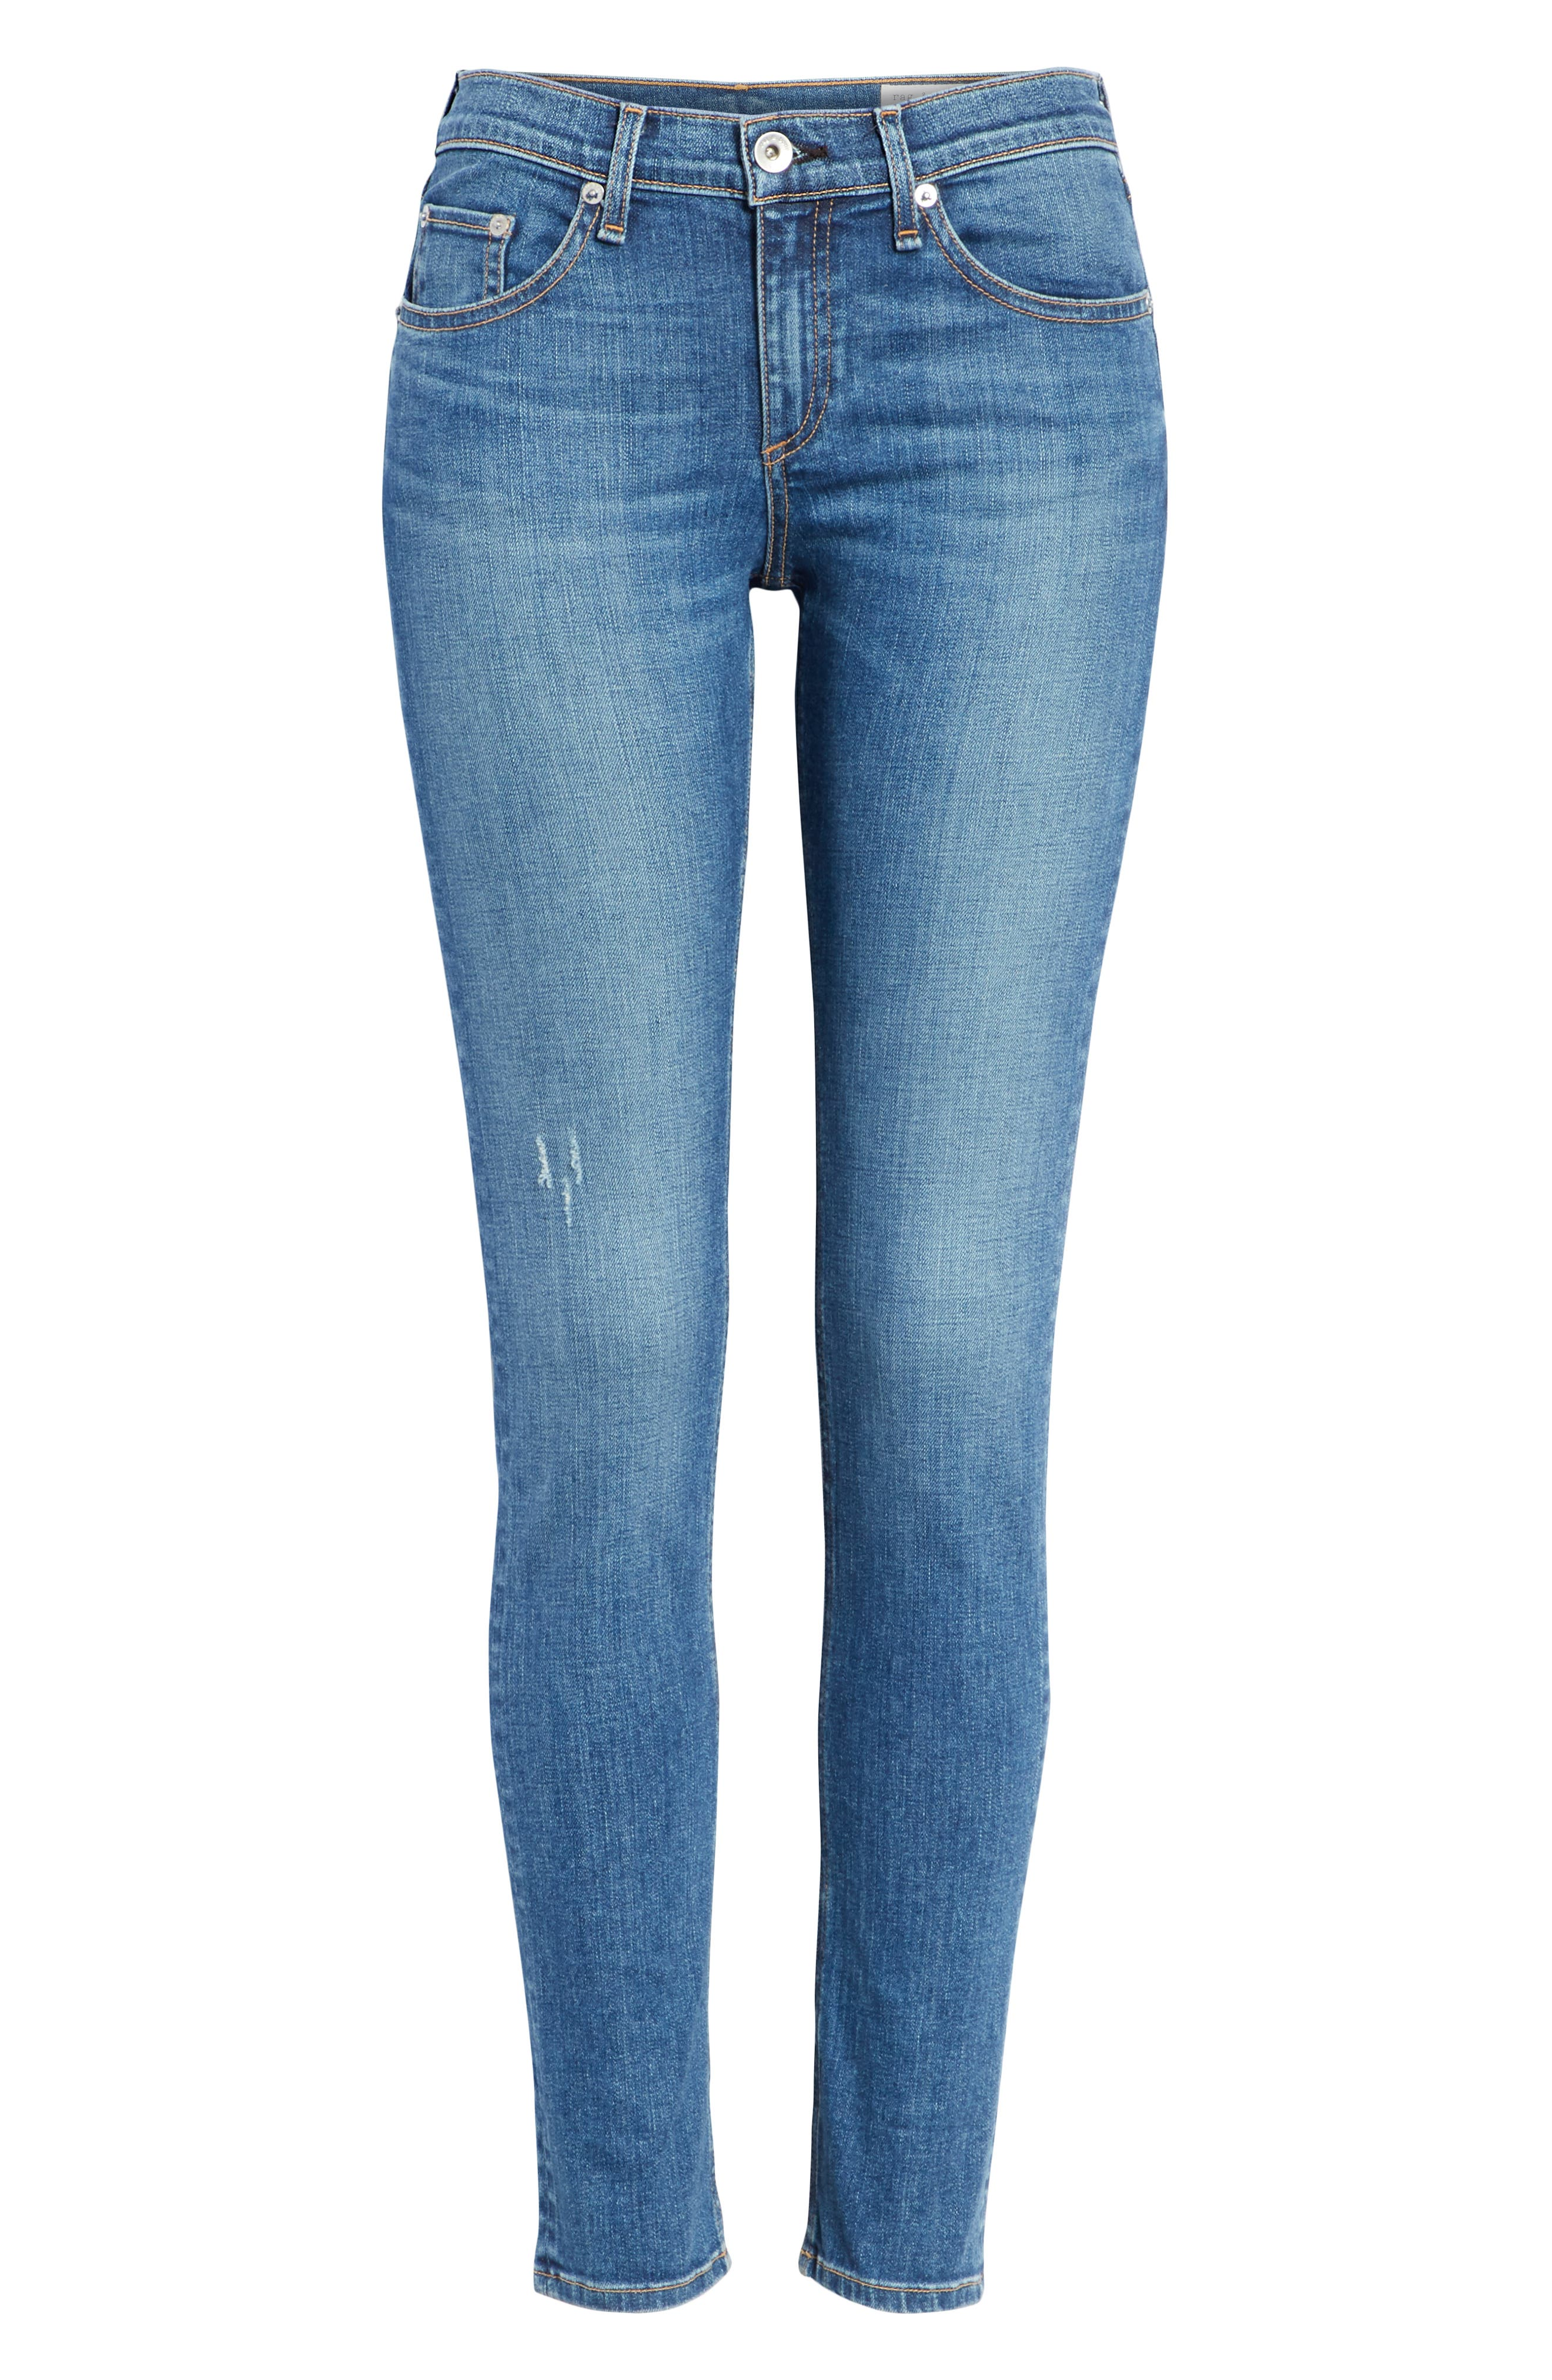 RAG & BONE,                             Skinny Jeans,                             Alternate thumbnail 7, color,                             420